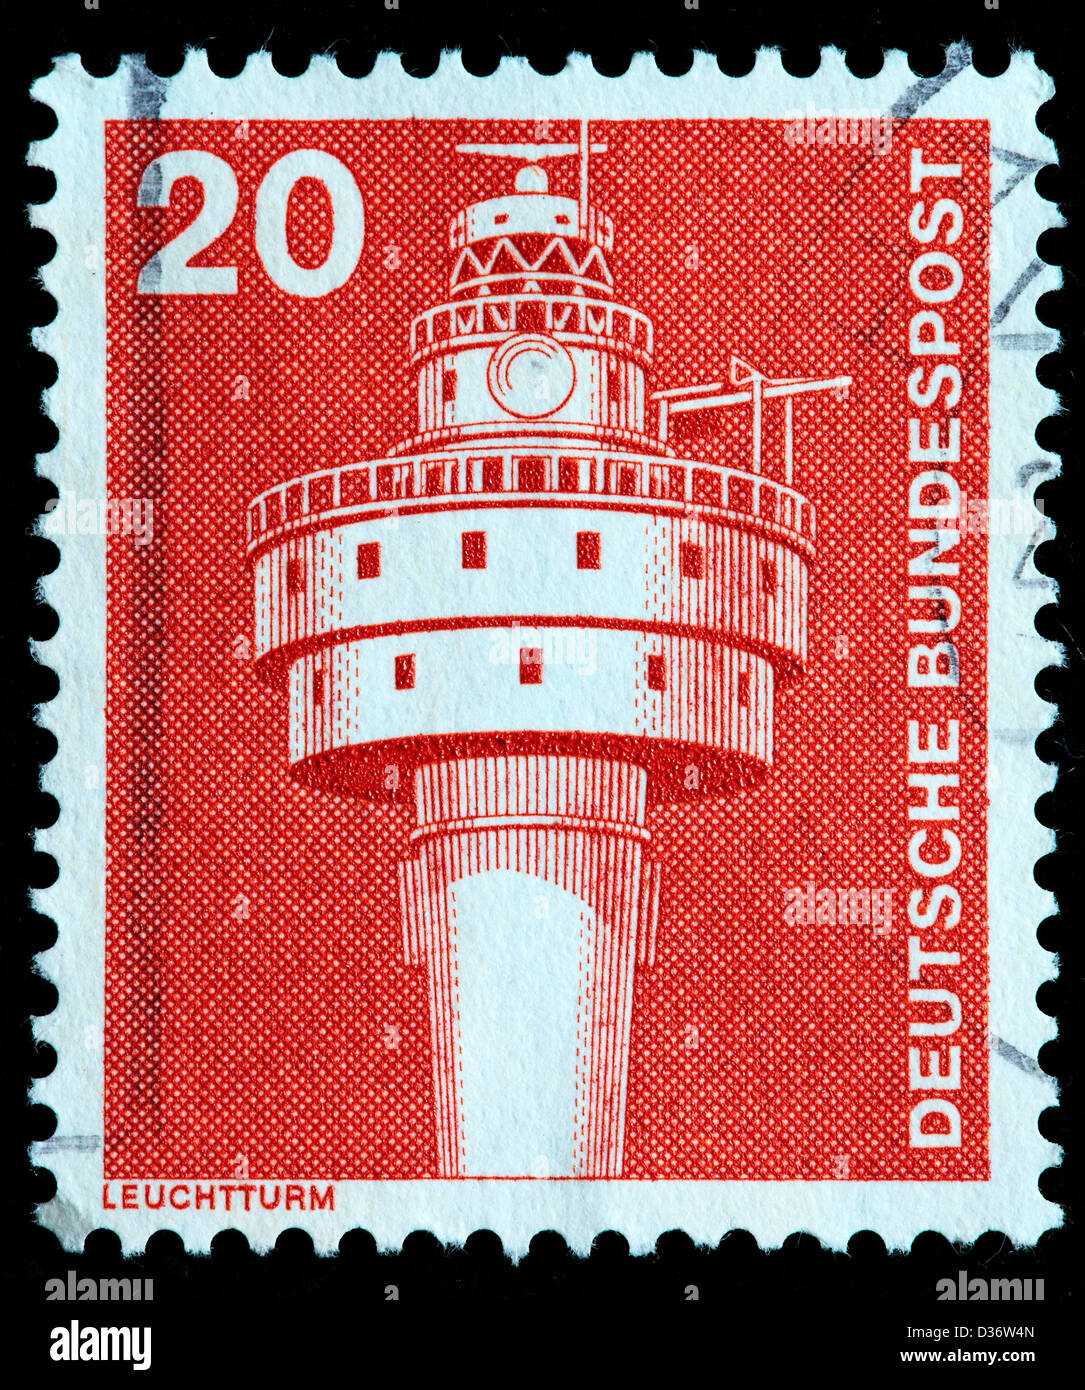 Old Weser lighthouse, postage stamp, Germany, 1975 - Stock Image